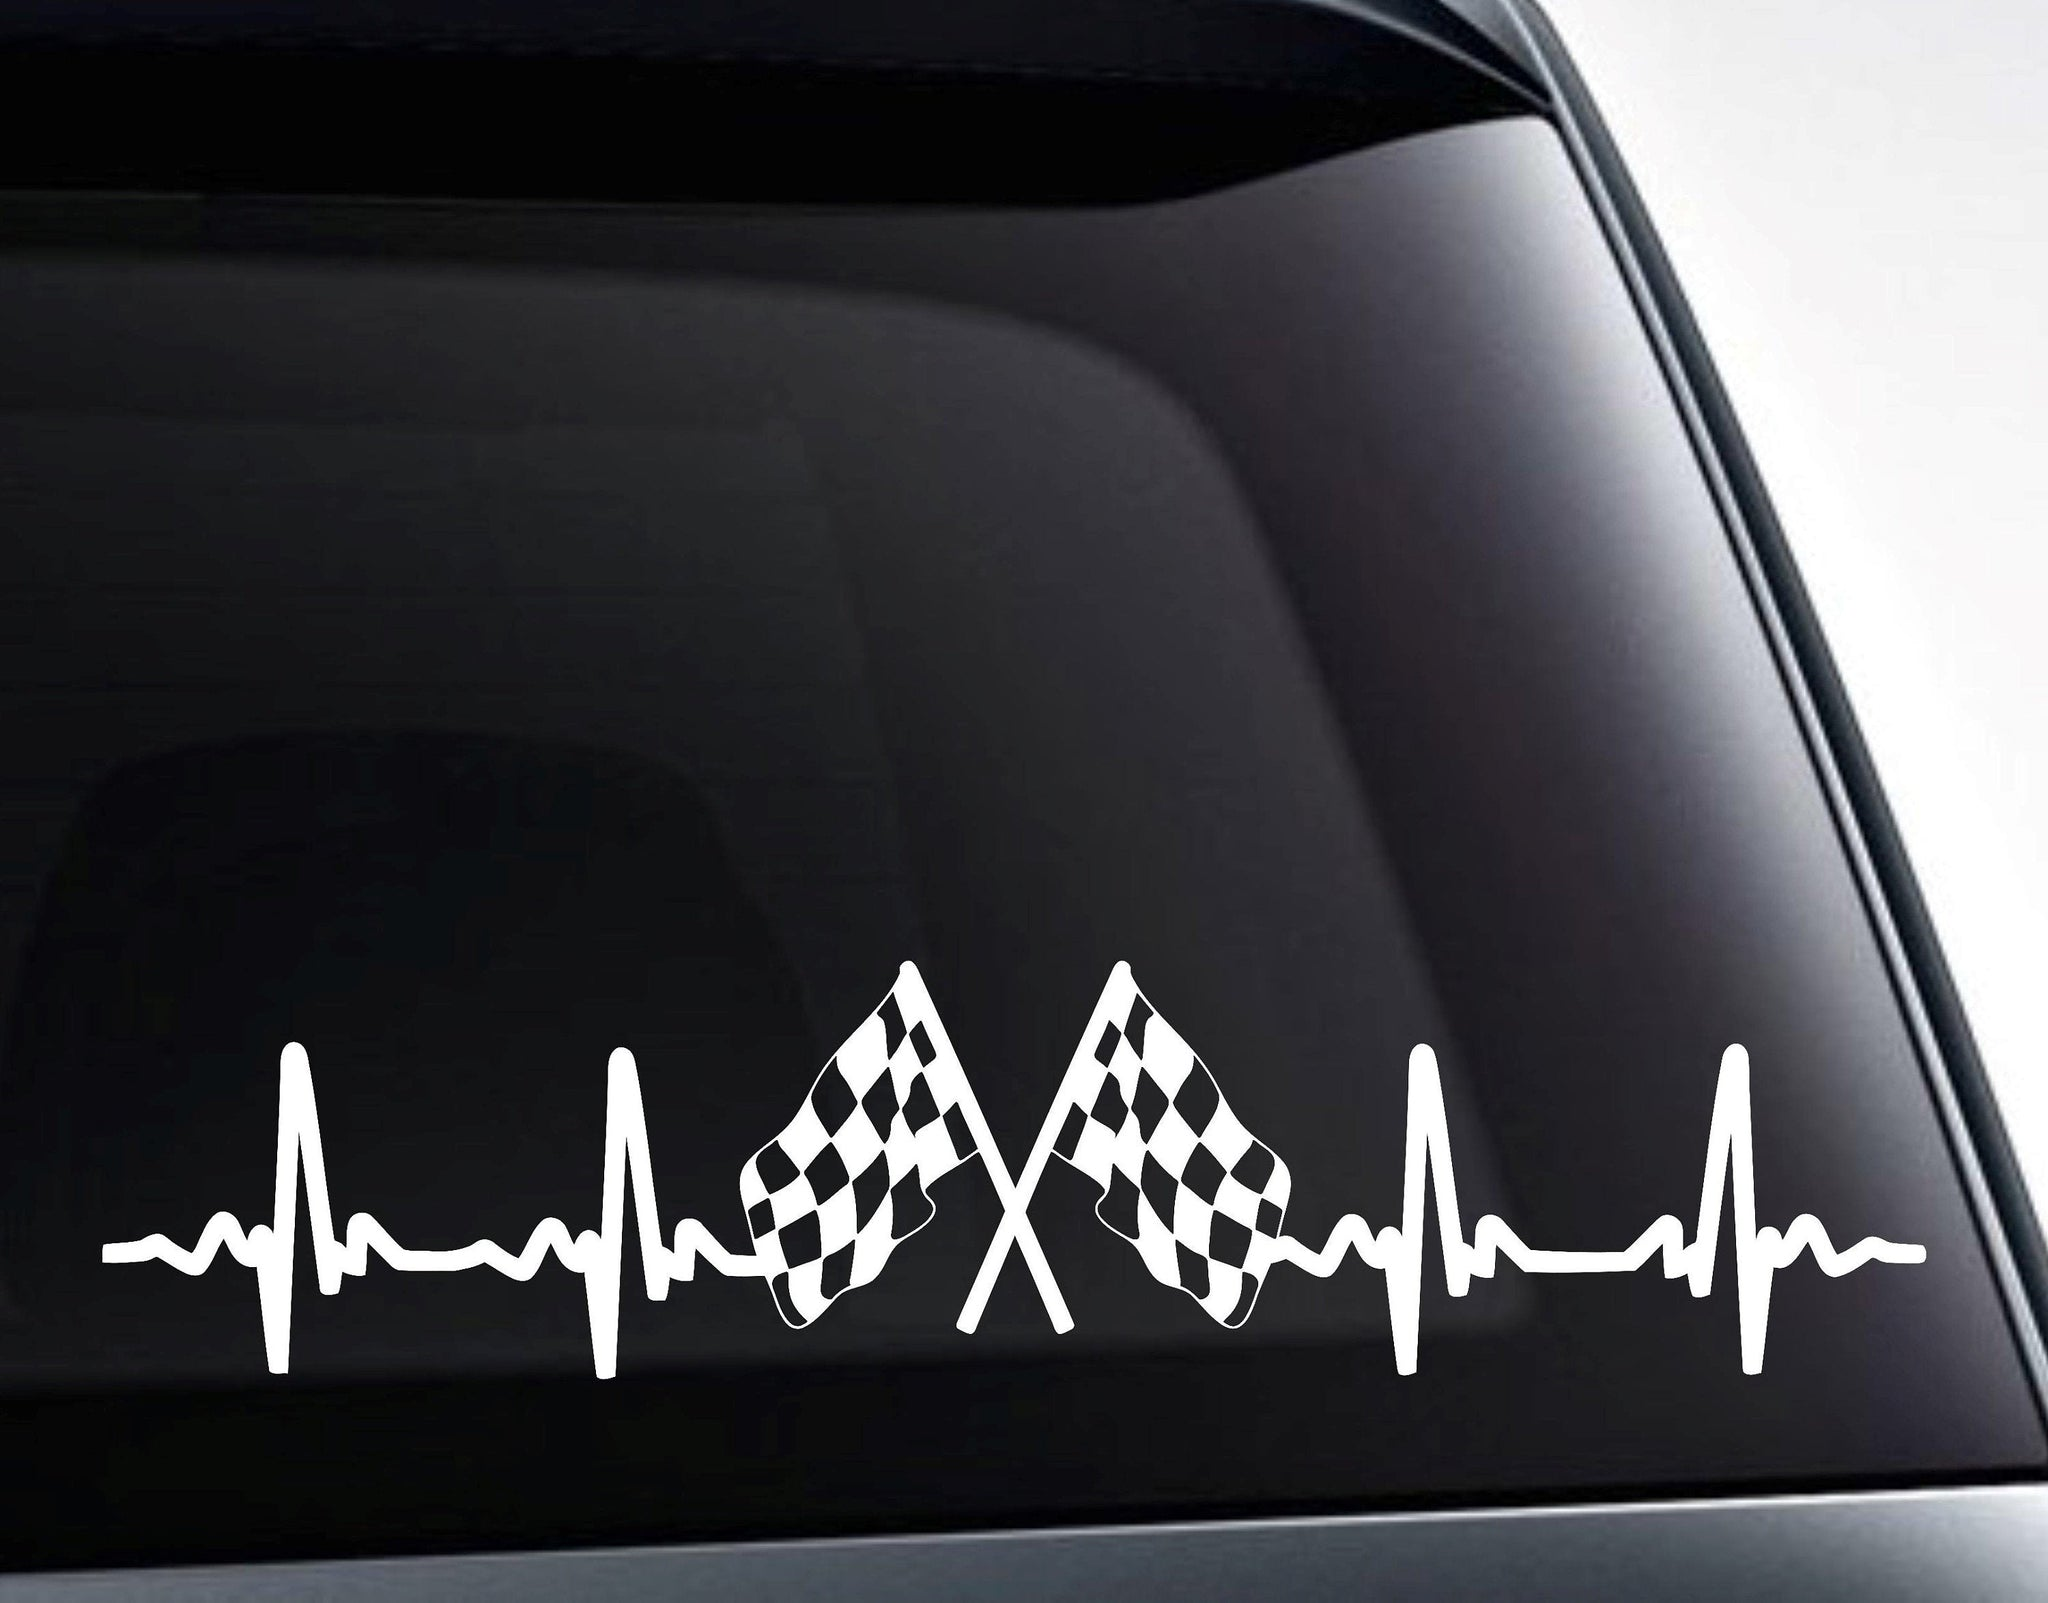 Checkered Racing Flags EKG Heartbeat Vinyl Decal Sticker